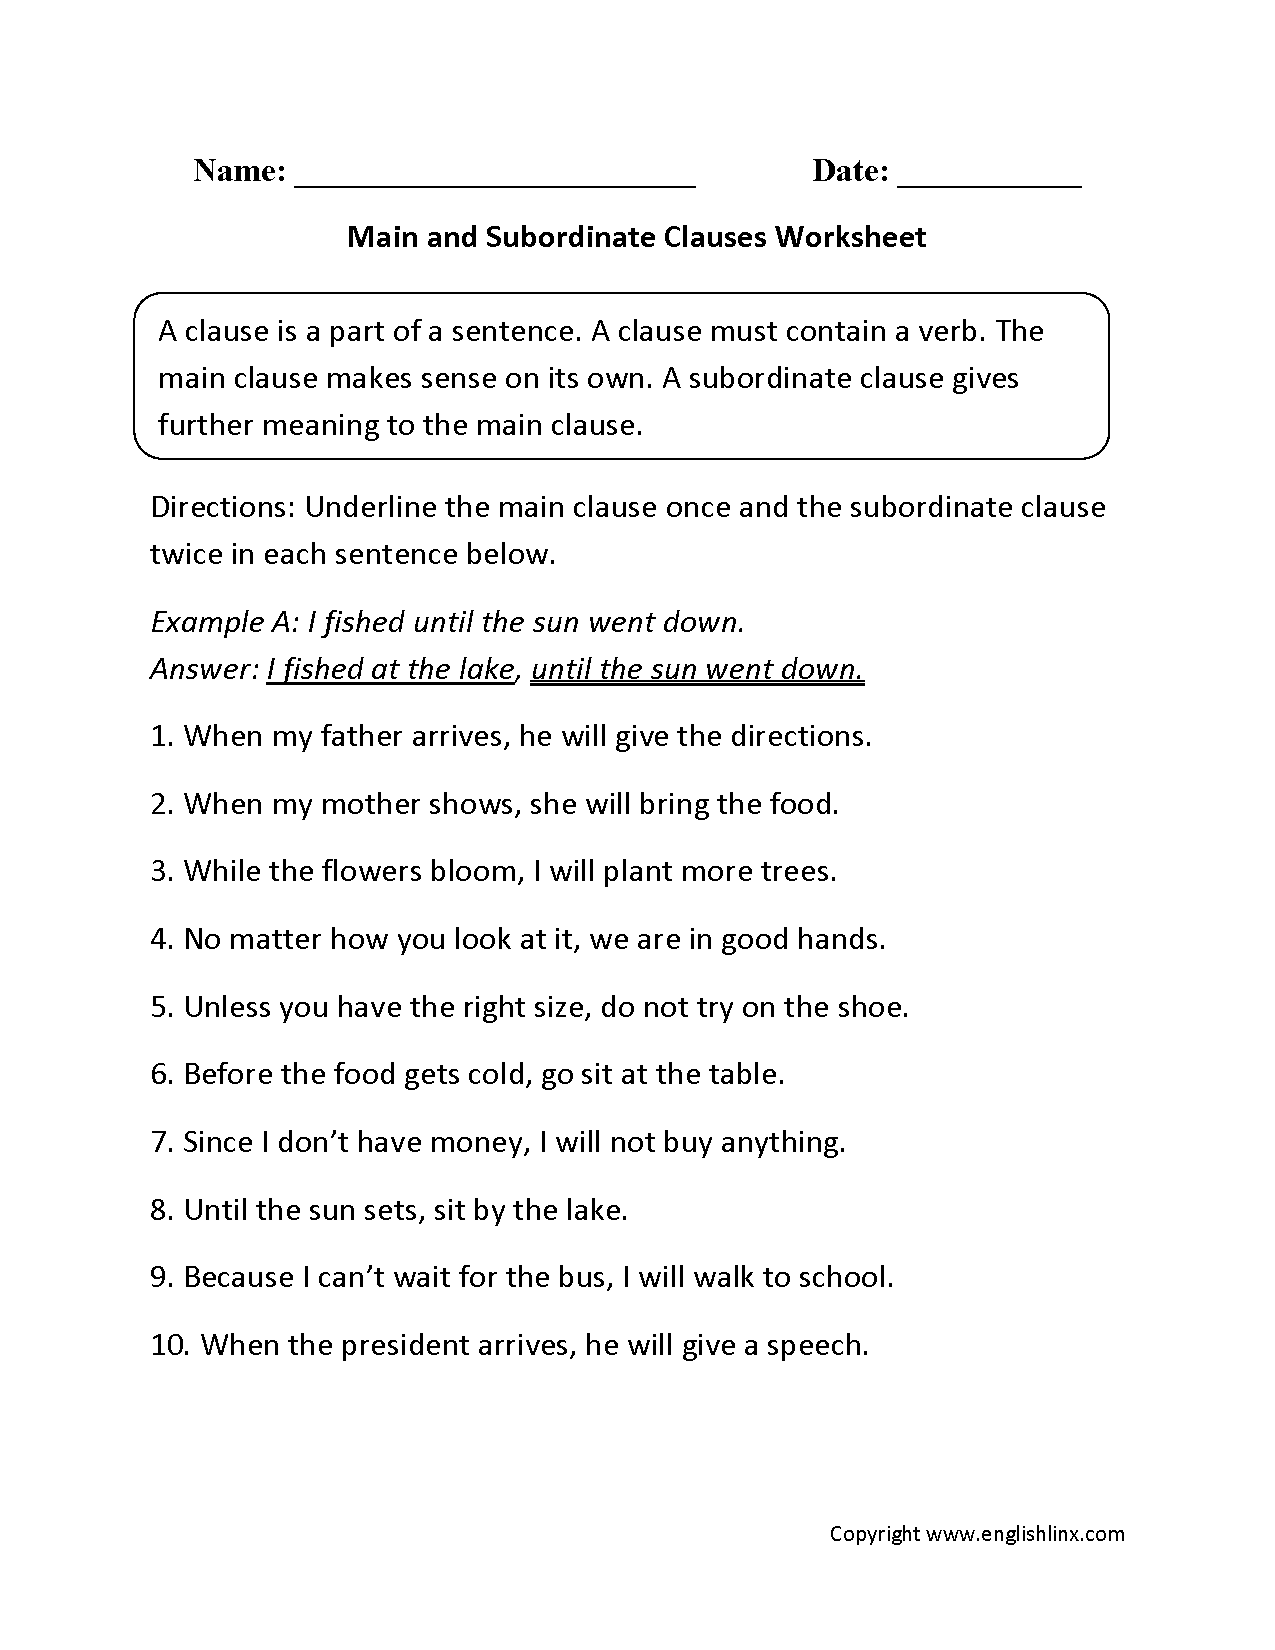 Worksheet Independent And Dependent Clauses Worksheet englishlinx com clauses worksheets main and subordinate worksheet